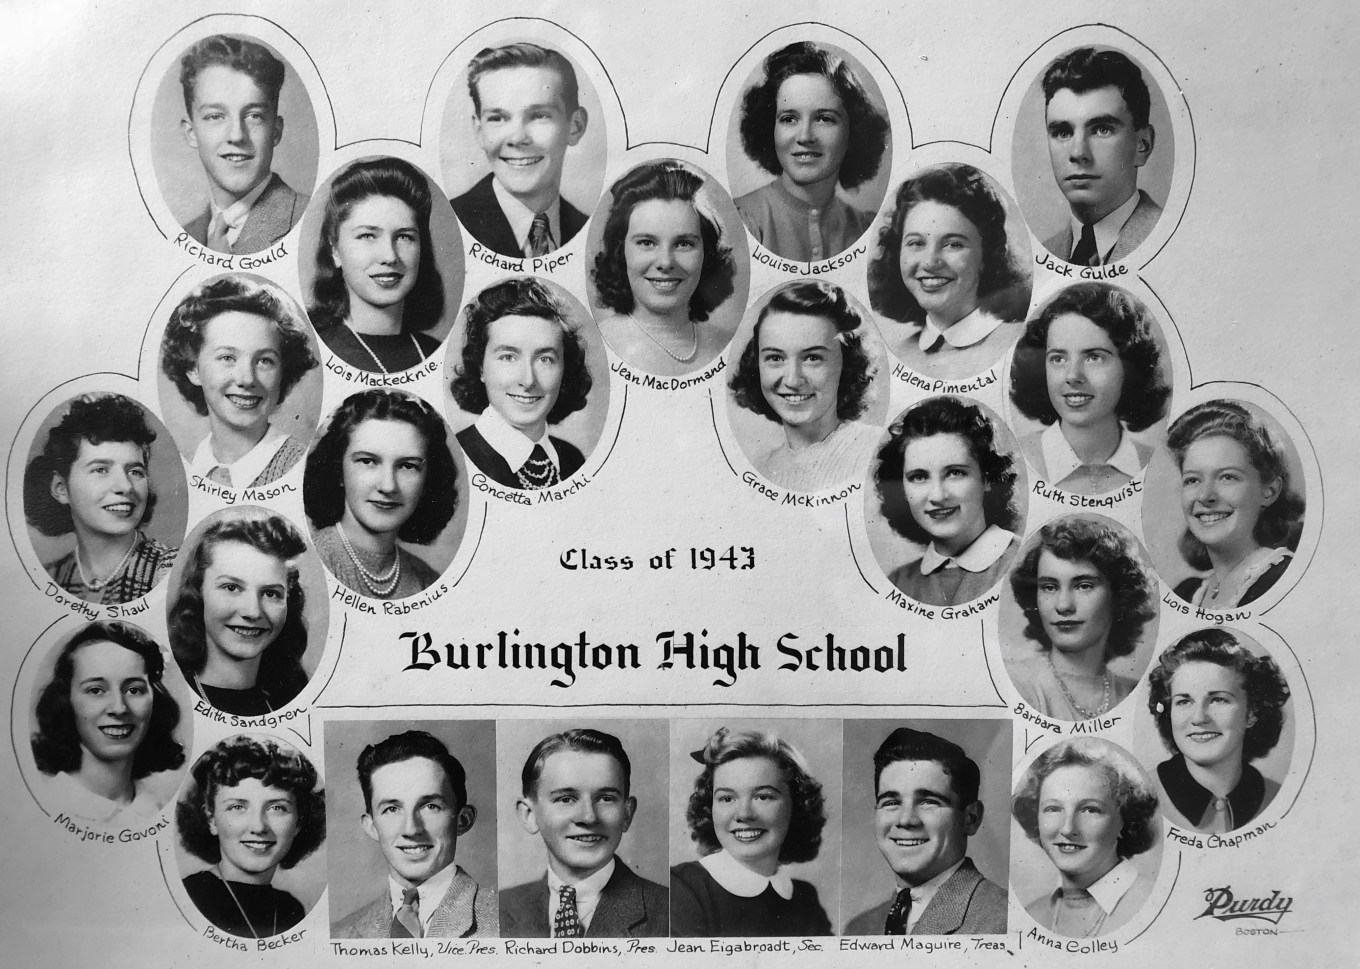 BHS class of 1943 group shot, Burlington MA